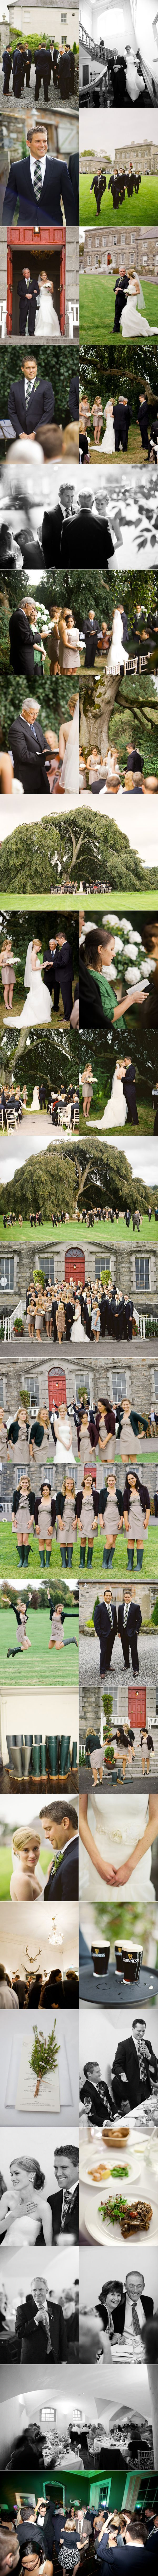 Irish Wedding 2